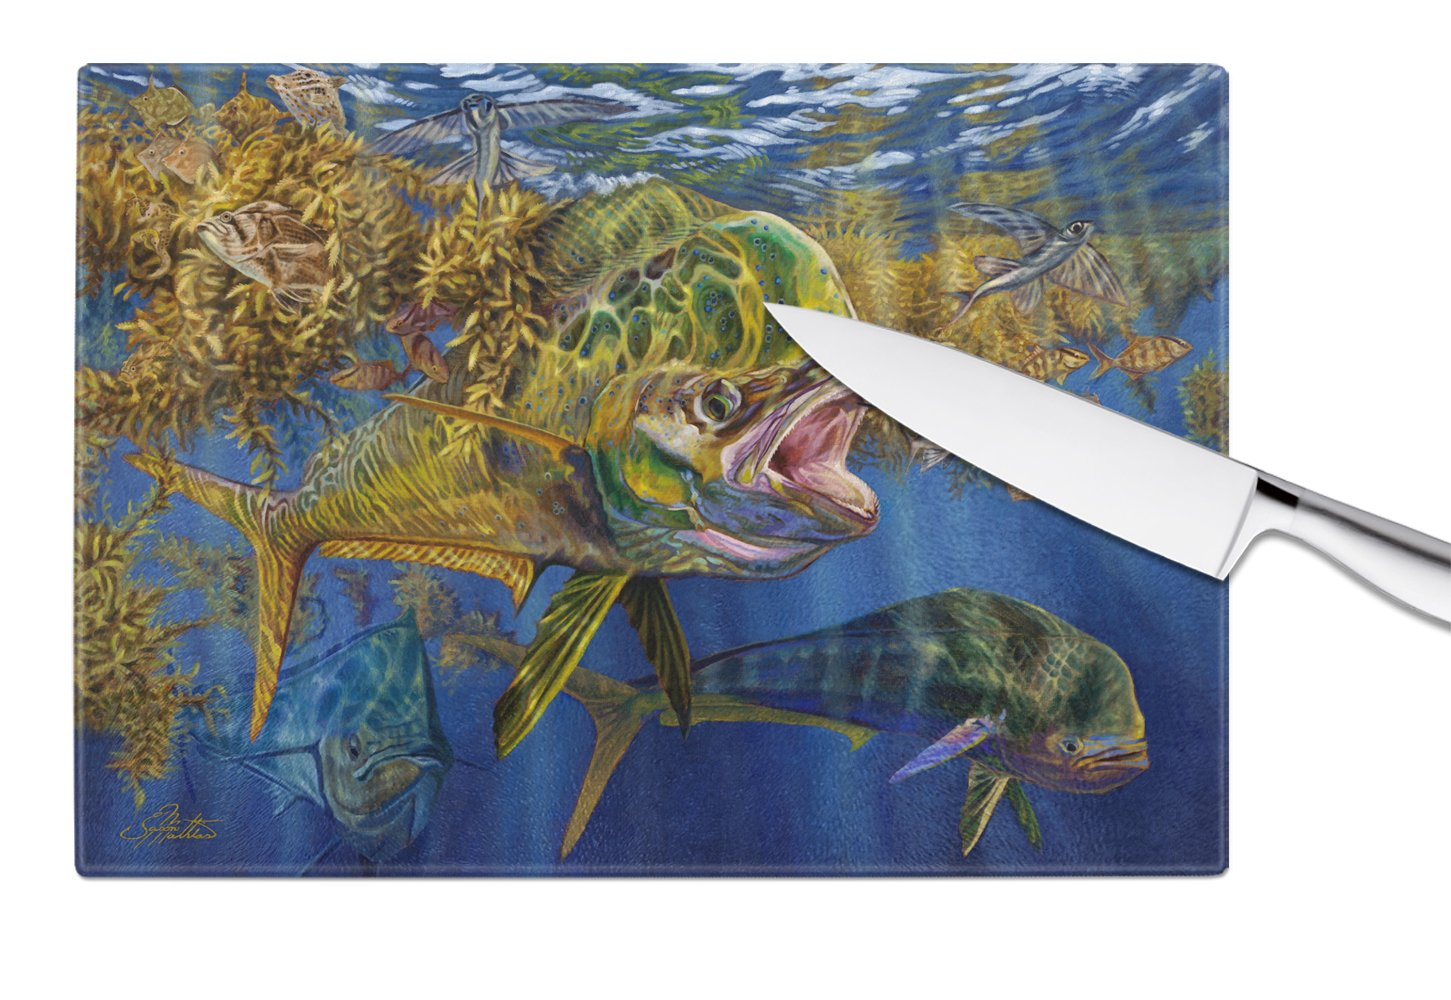 Seaweed Salad Mahi Glass Cutting Board Large JMA2013LCB by Caroline's Treasures